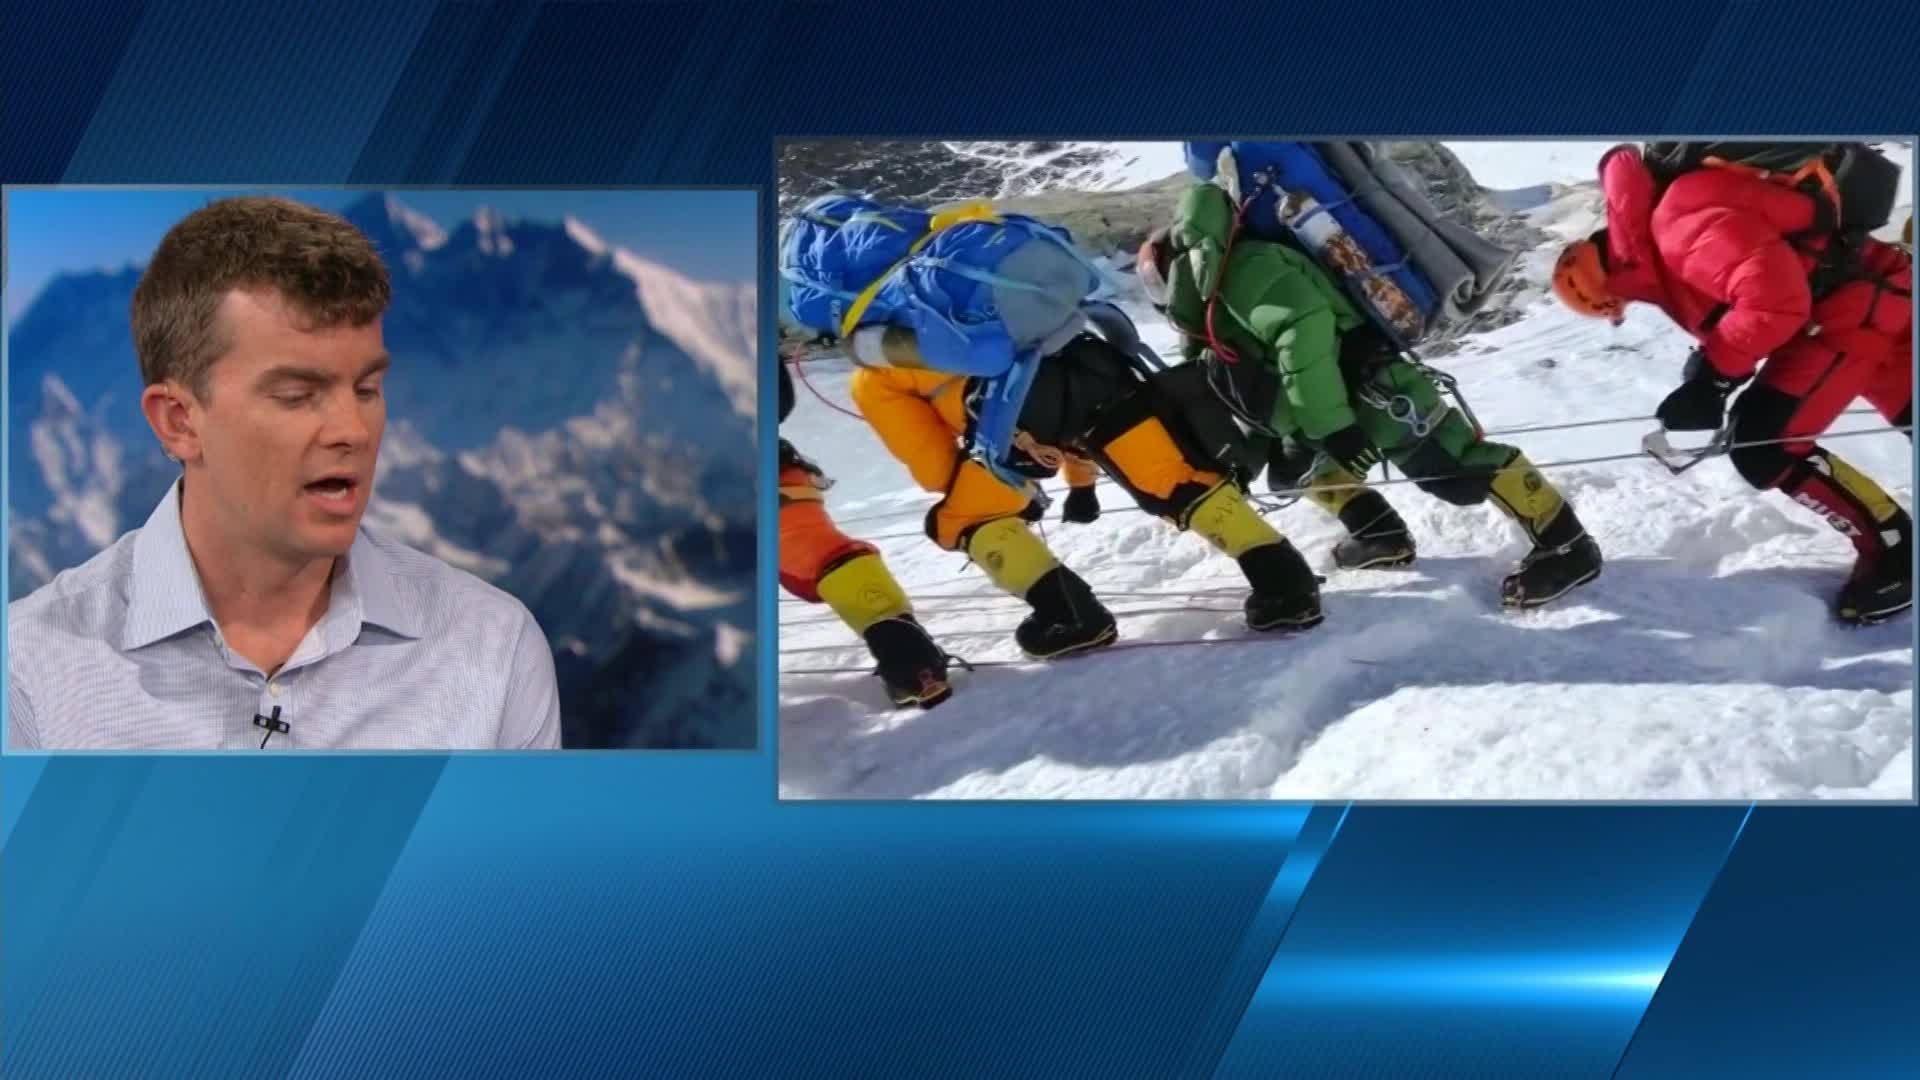 Mt Everest climber on crowds, weather conditions